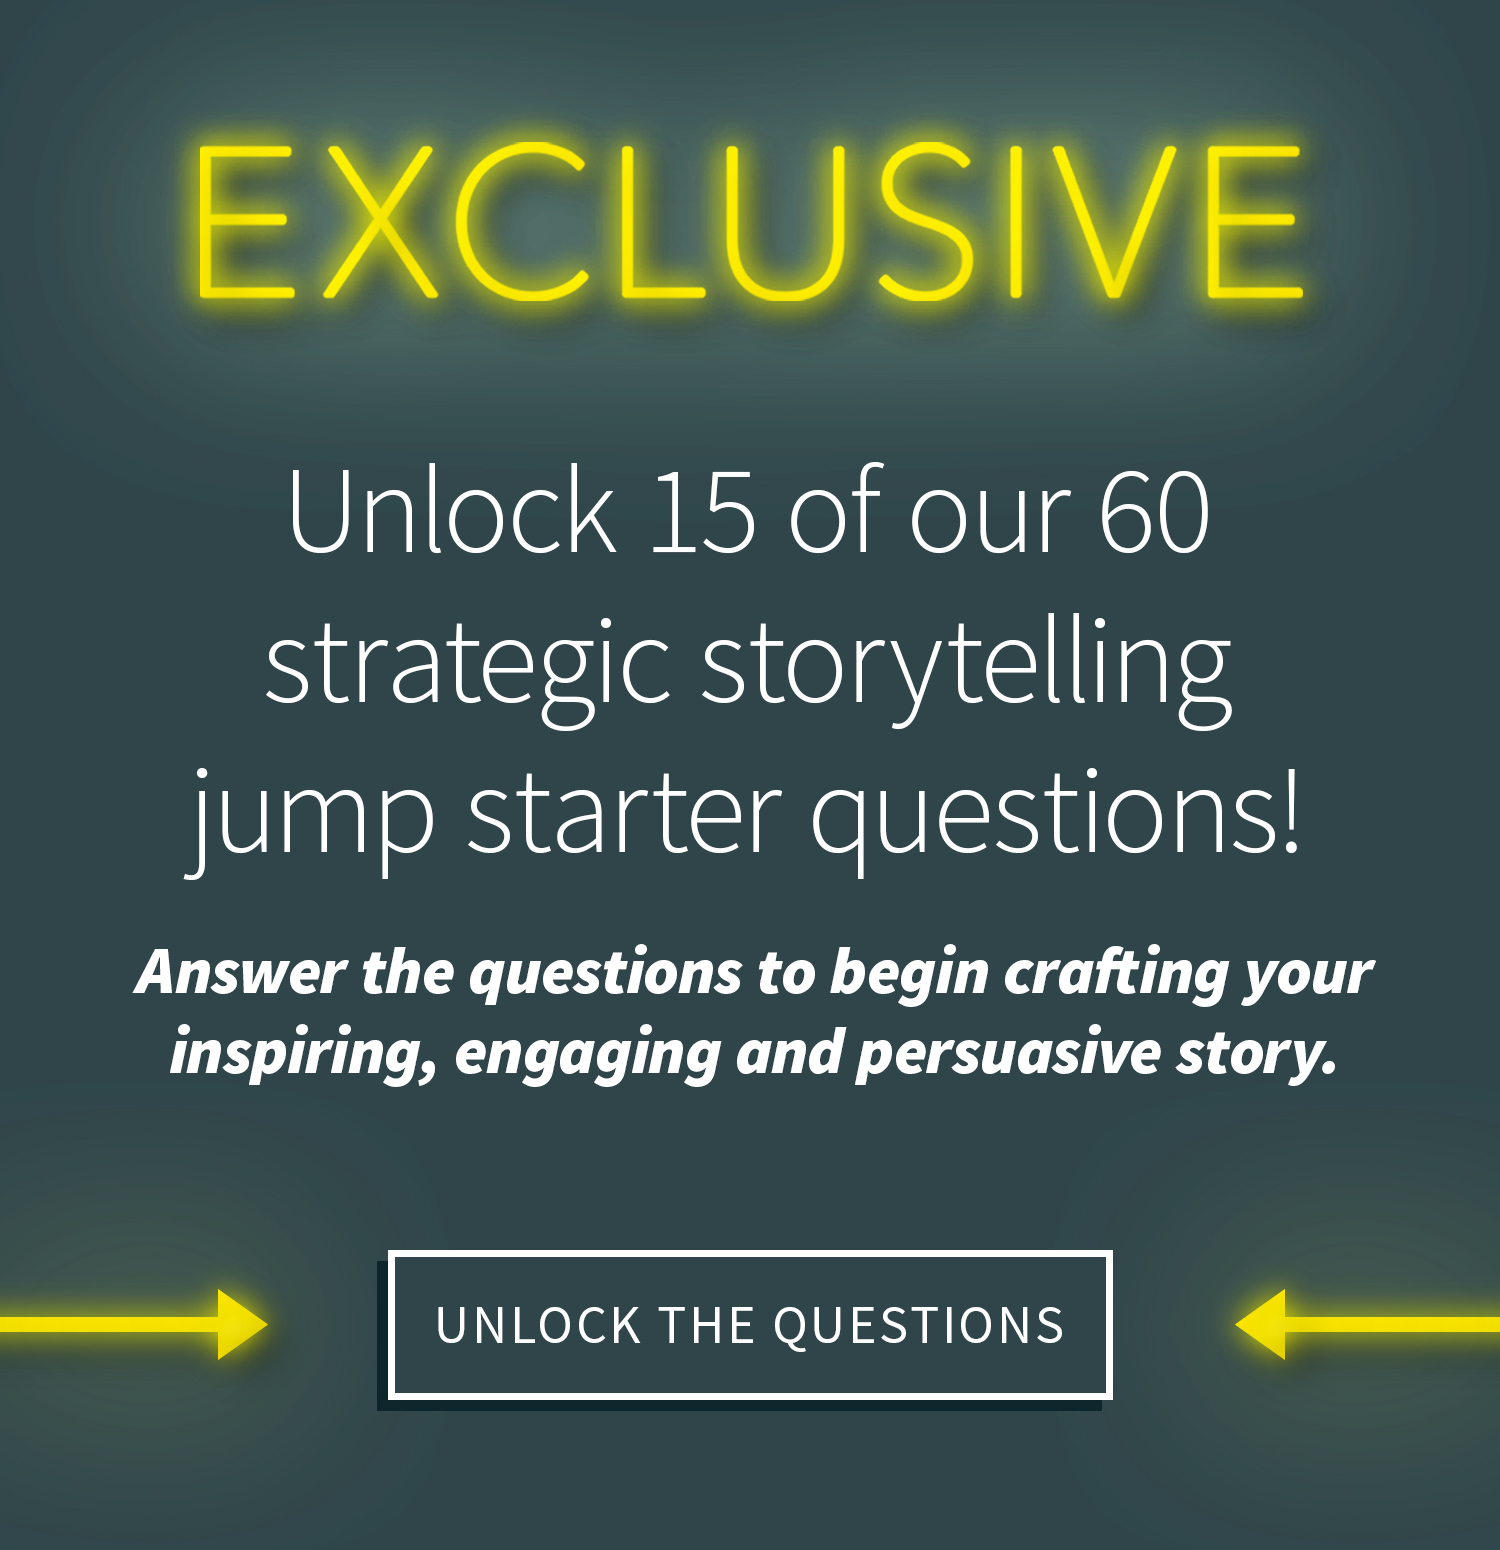 Unlock the questions